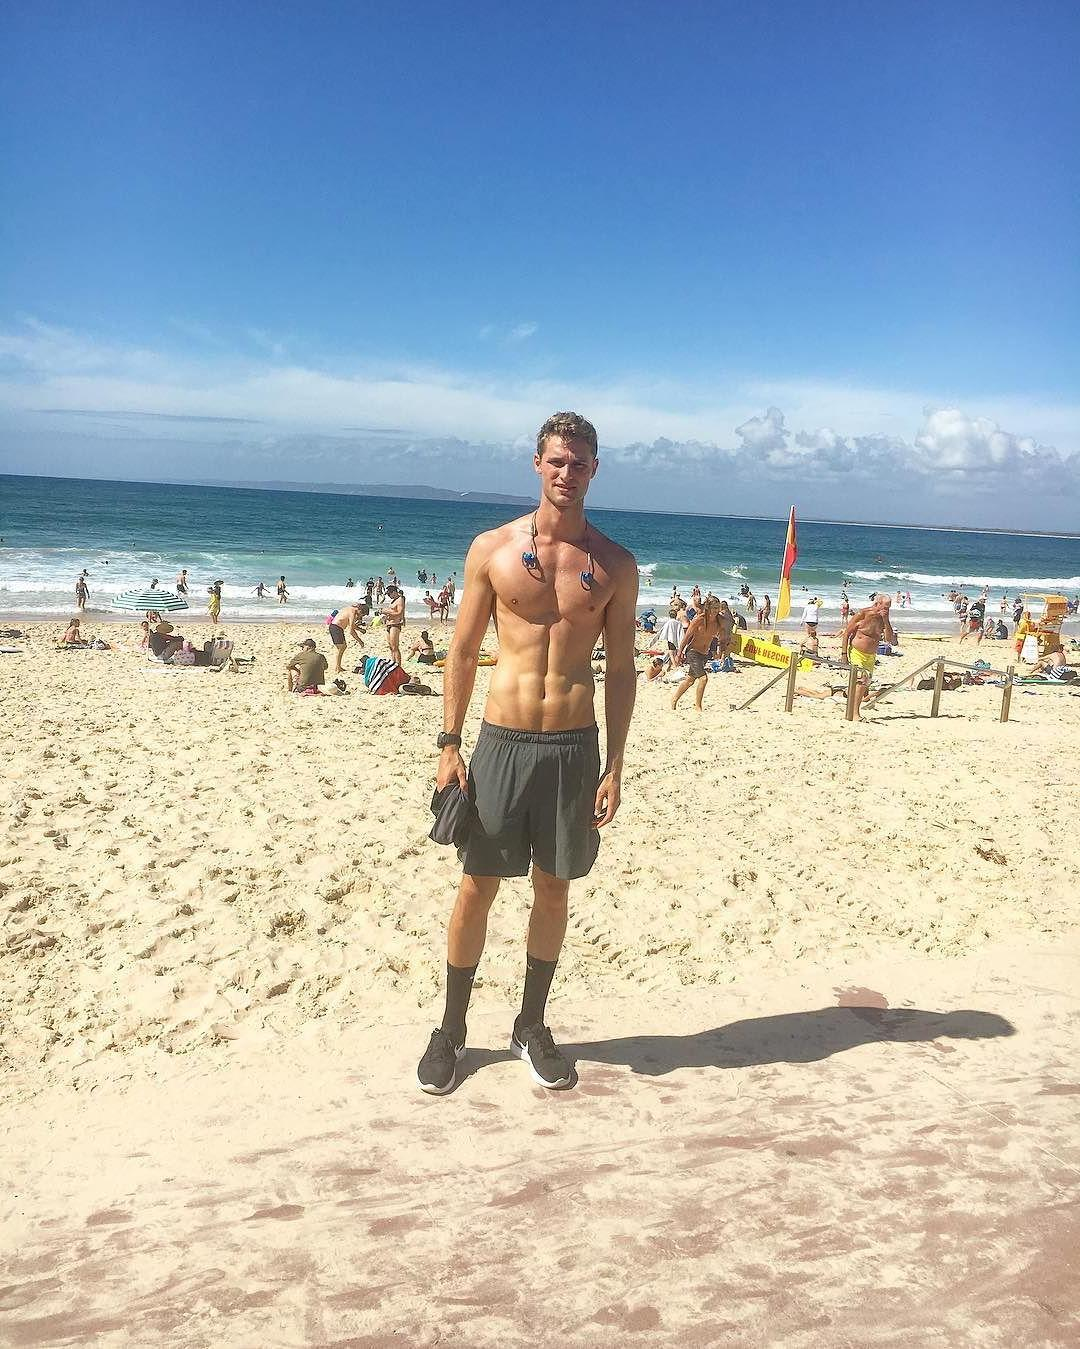 spotted-tall-shirtless-fit-beach-boy